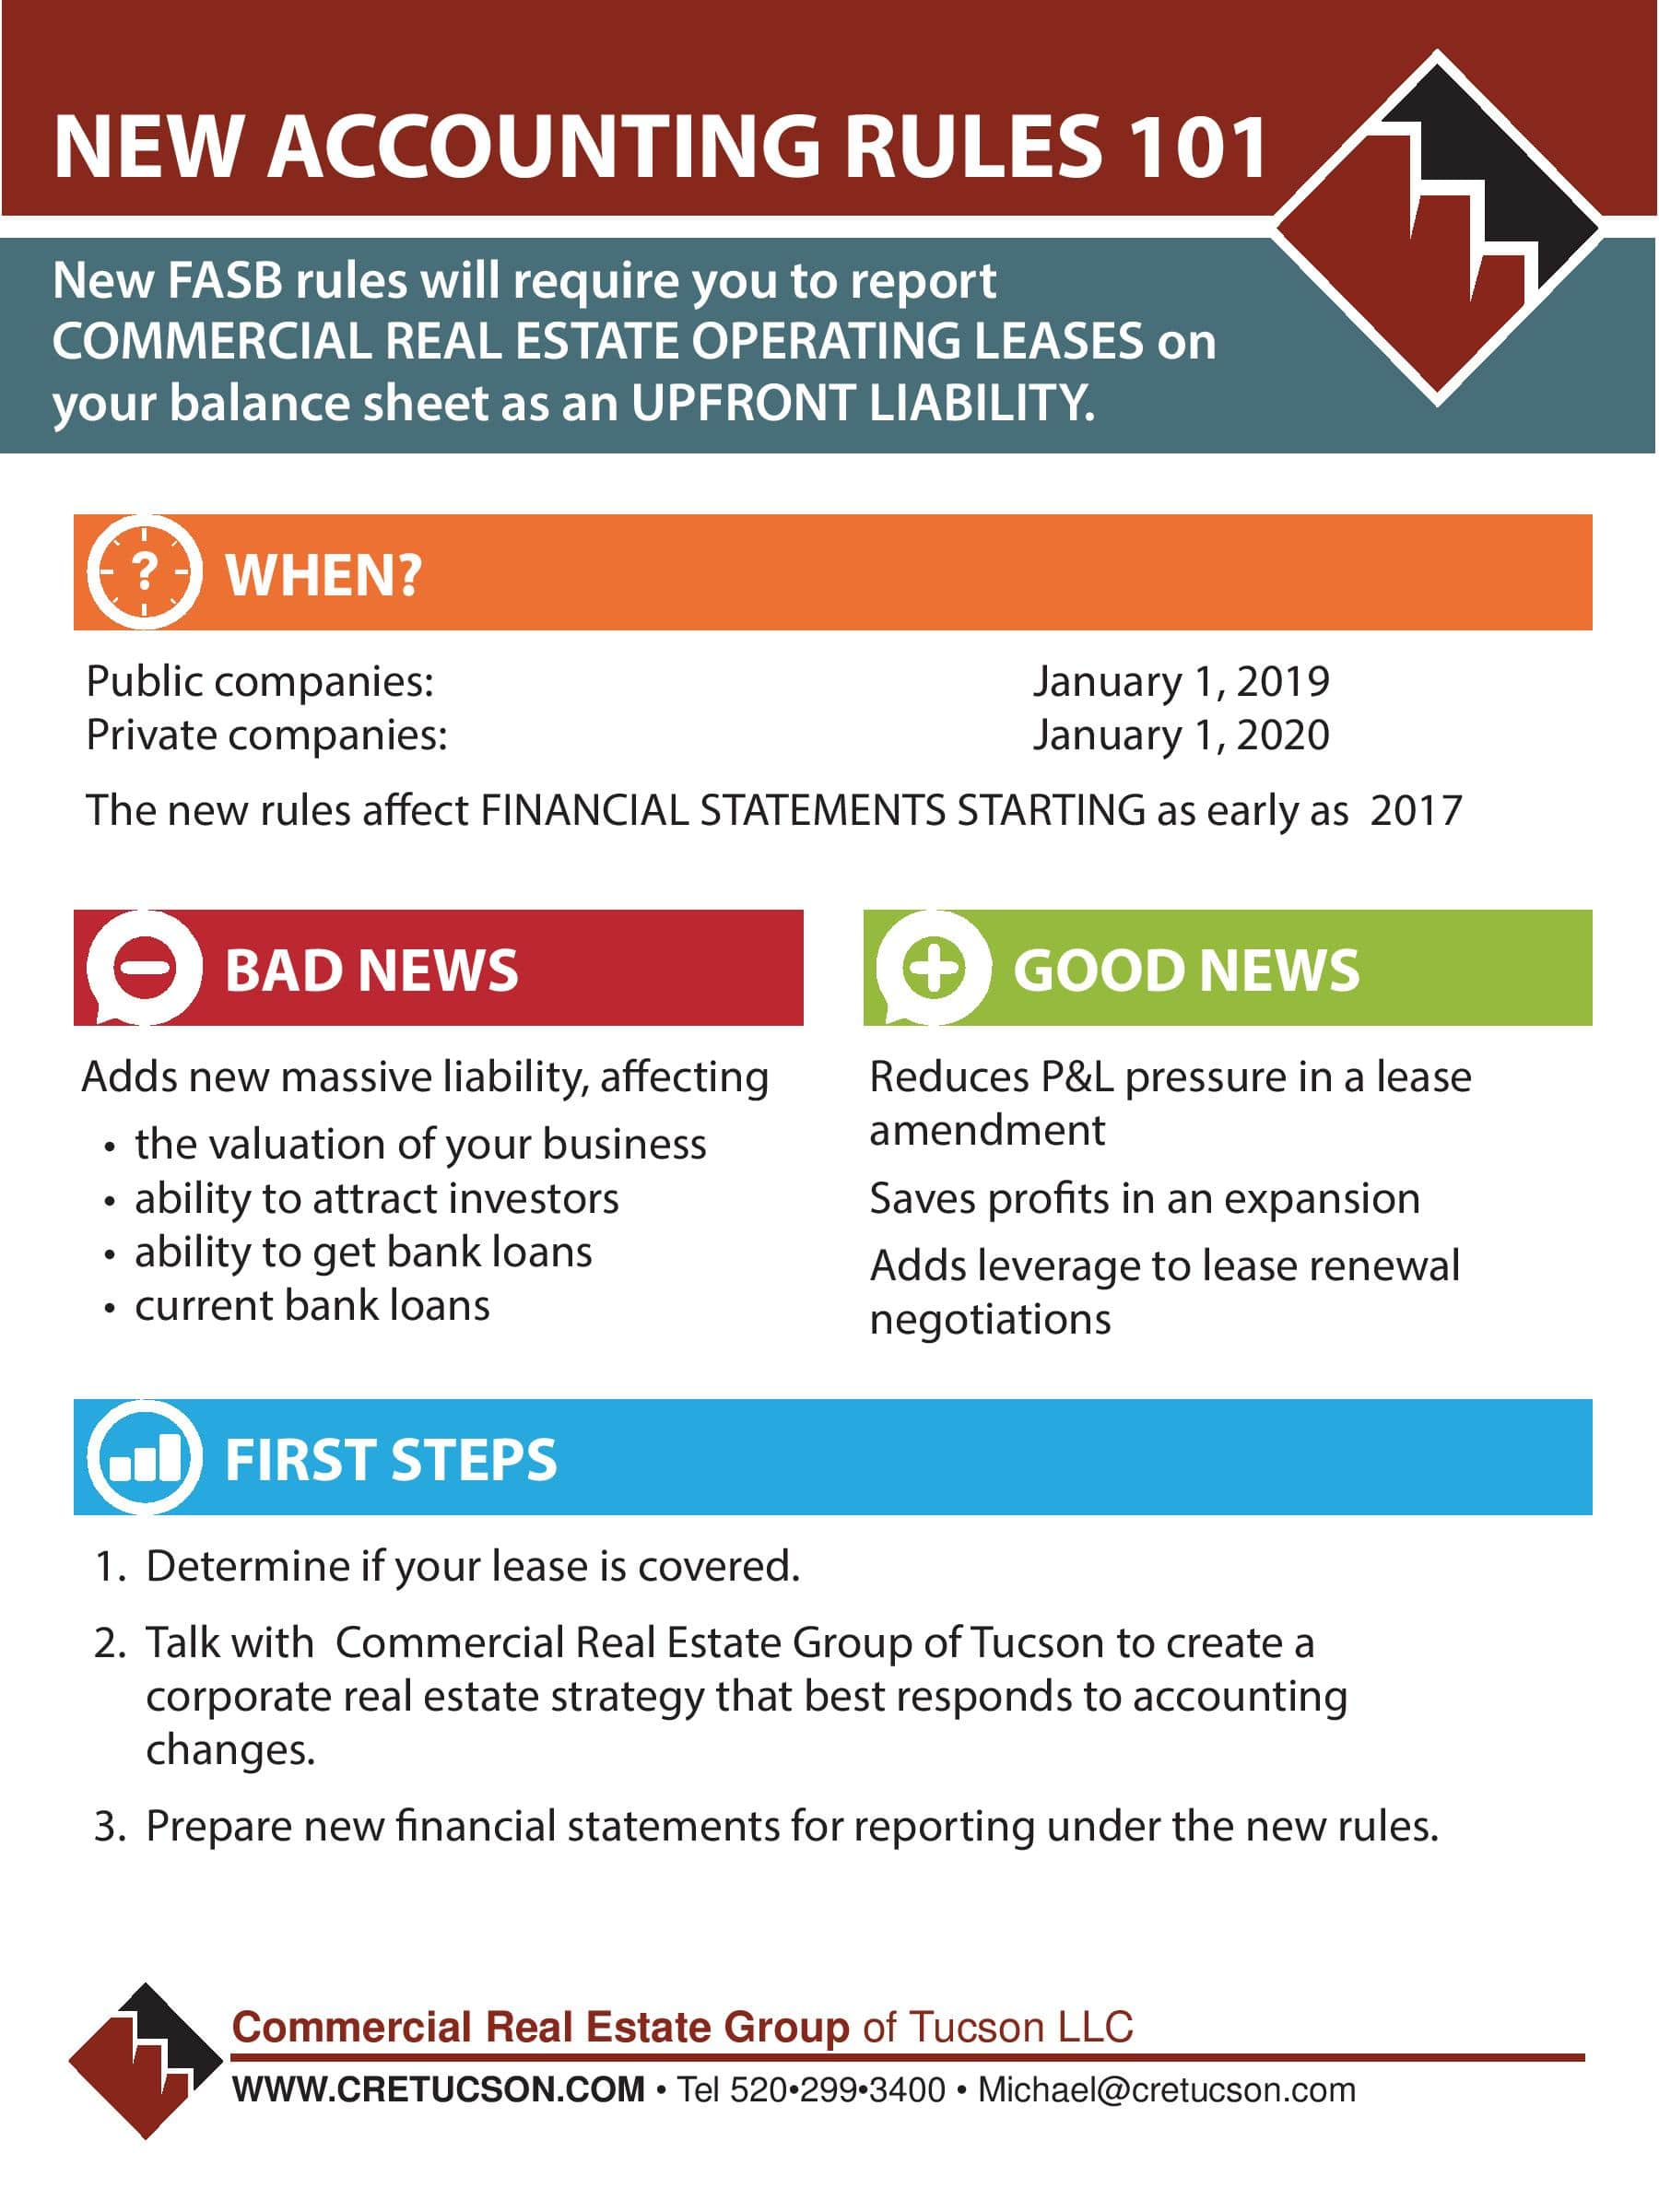 FASB Infographic